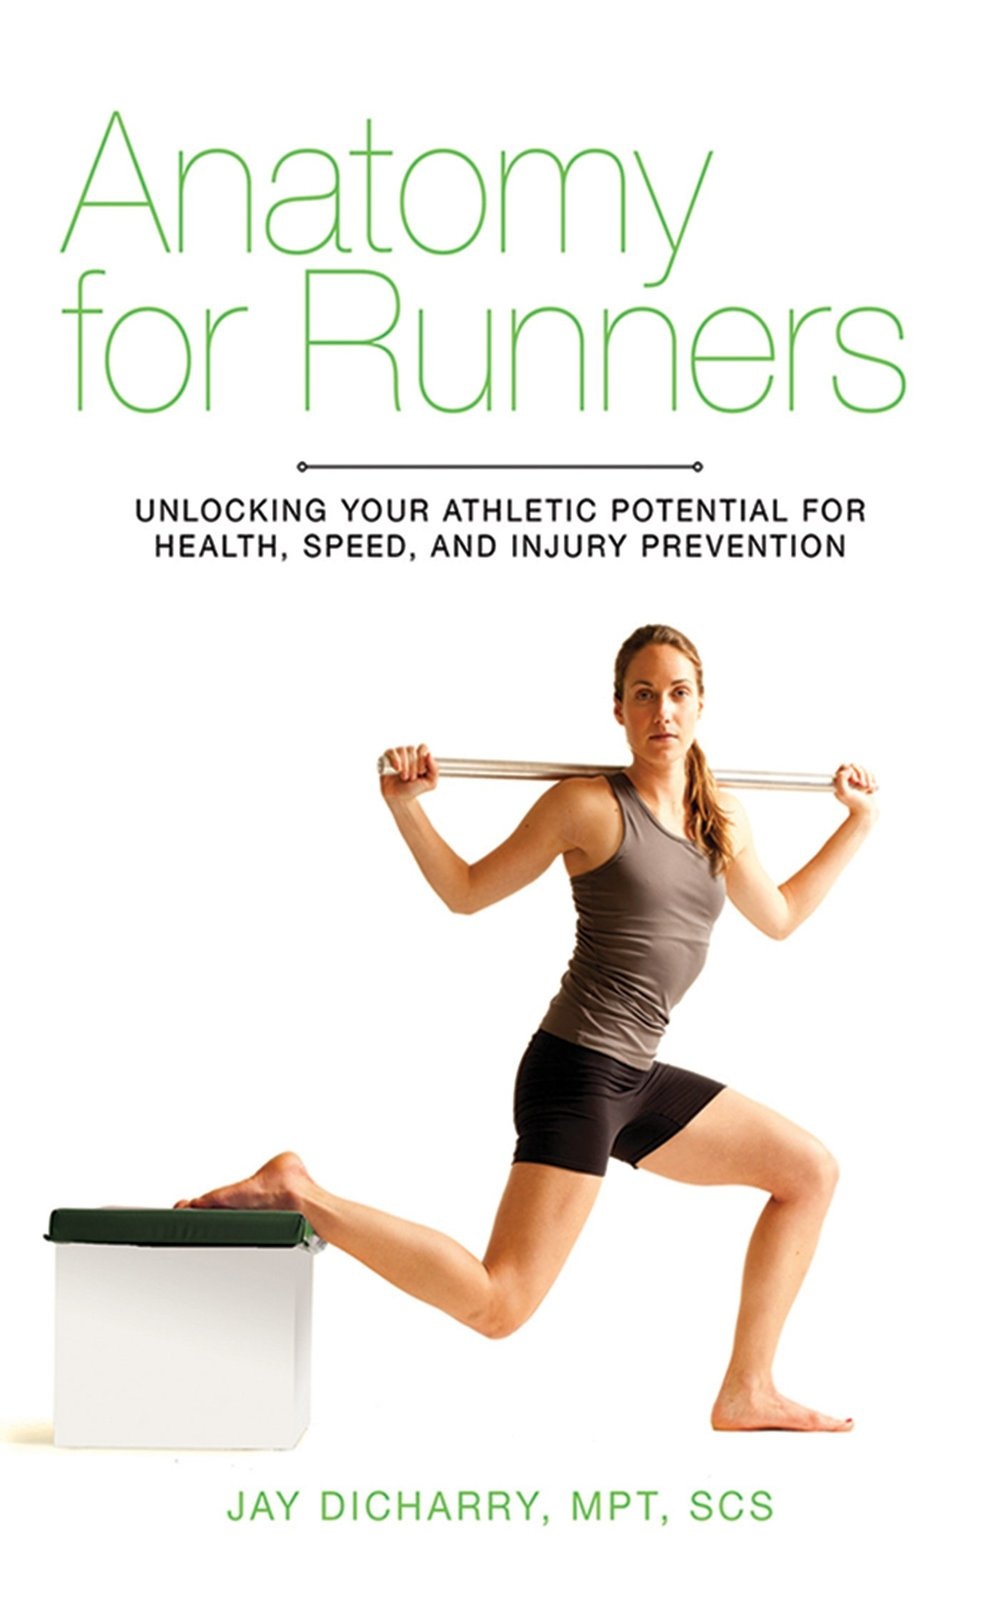 ...to develop a strong base of exercises for strengthening those running muscles and joints.